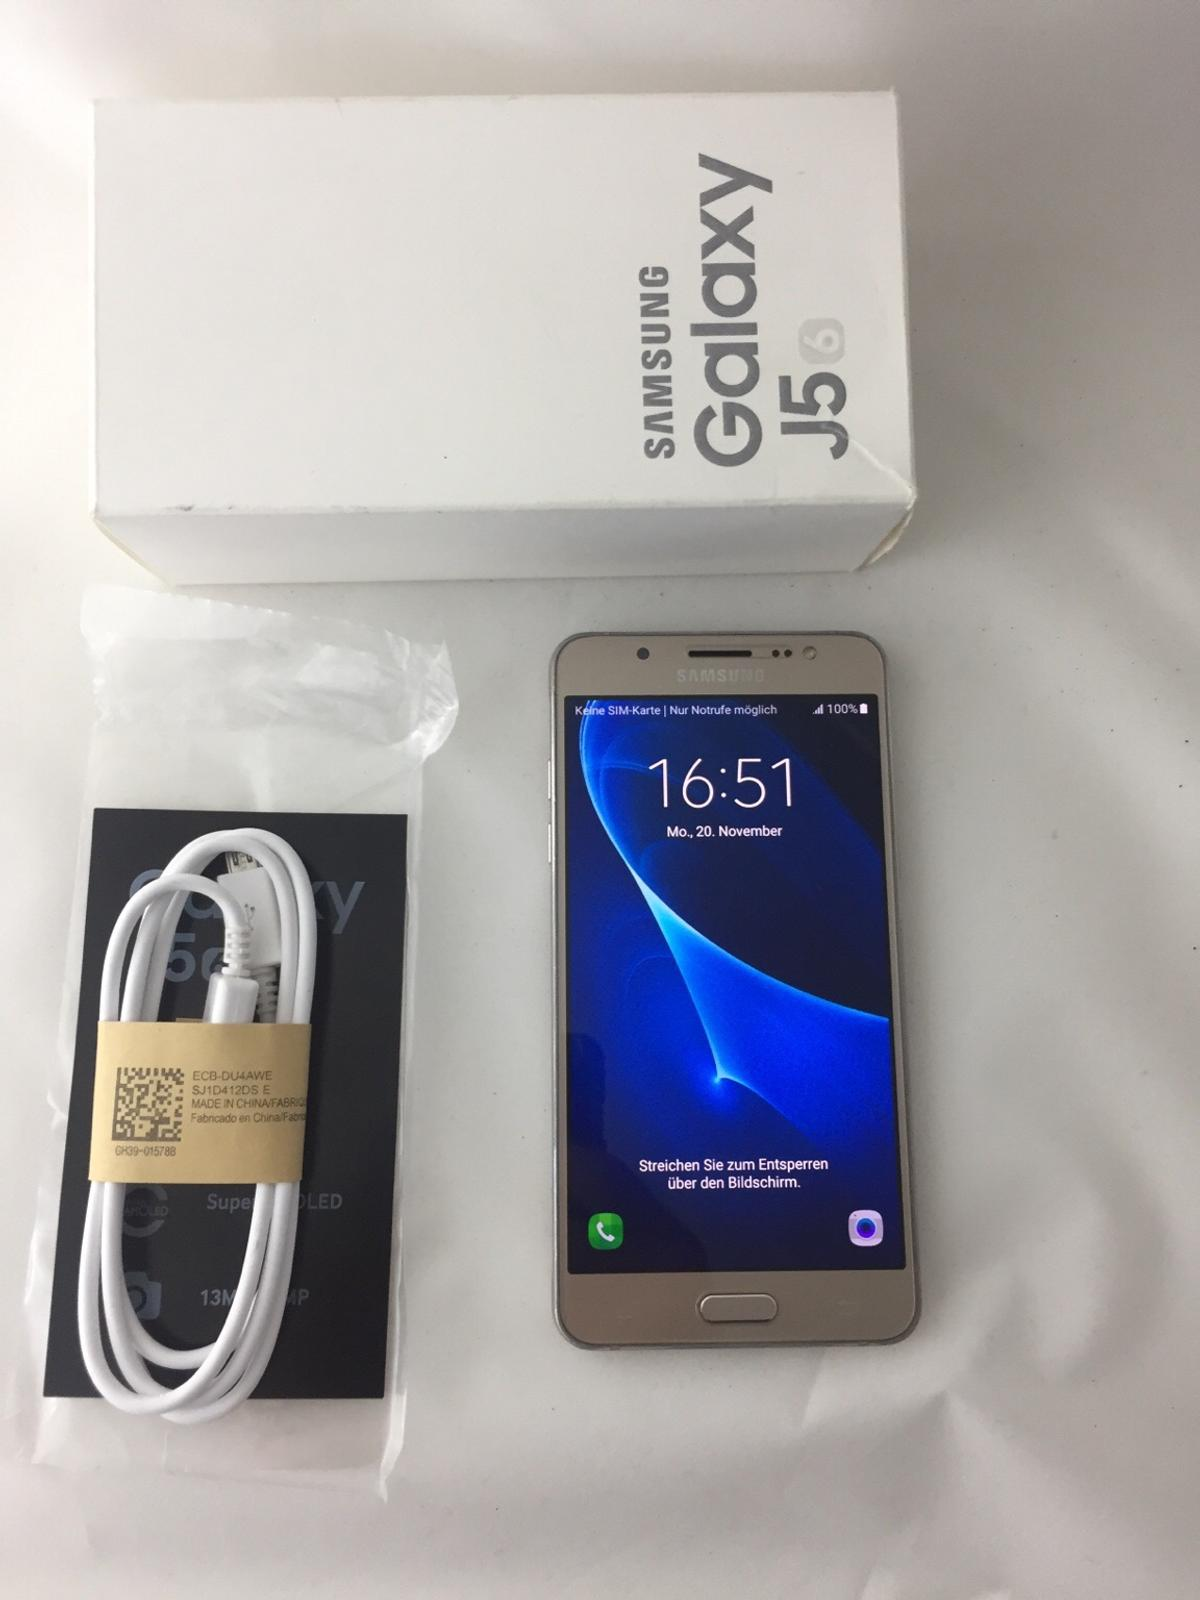 Samsung J5 Sim Karte.Samsung Galaxy J5 2016 Sm J510fn Ds In 83395 Freilassing For